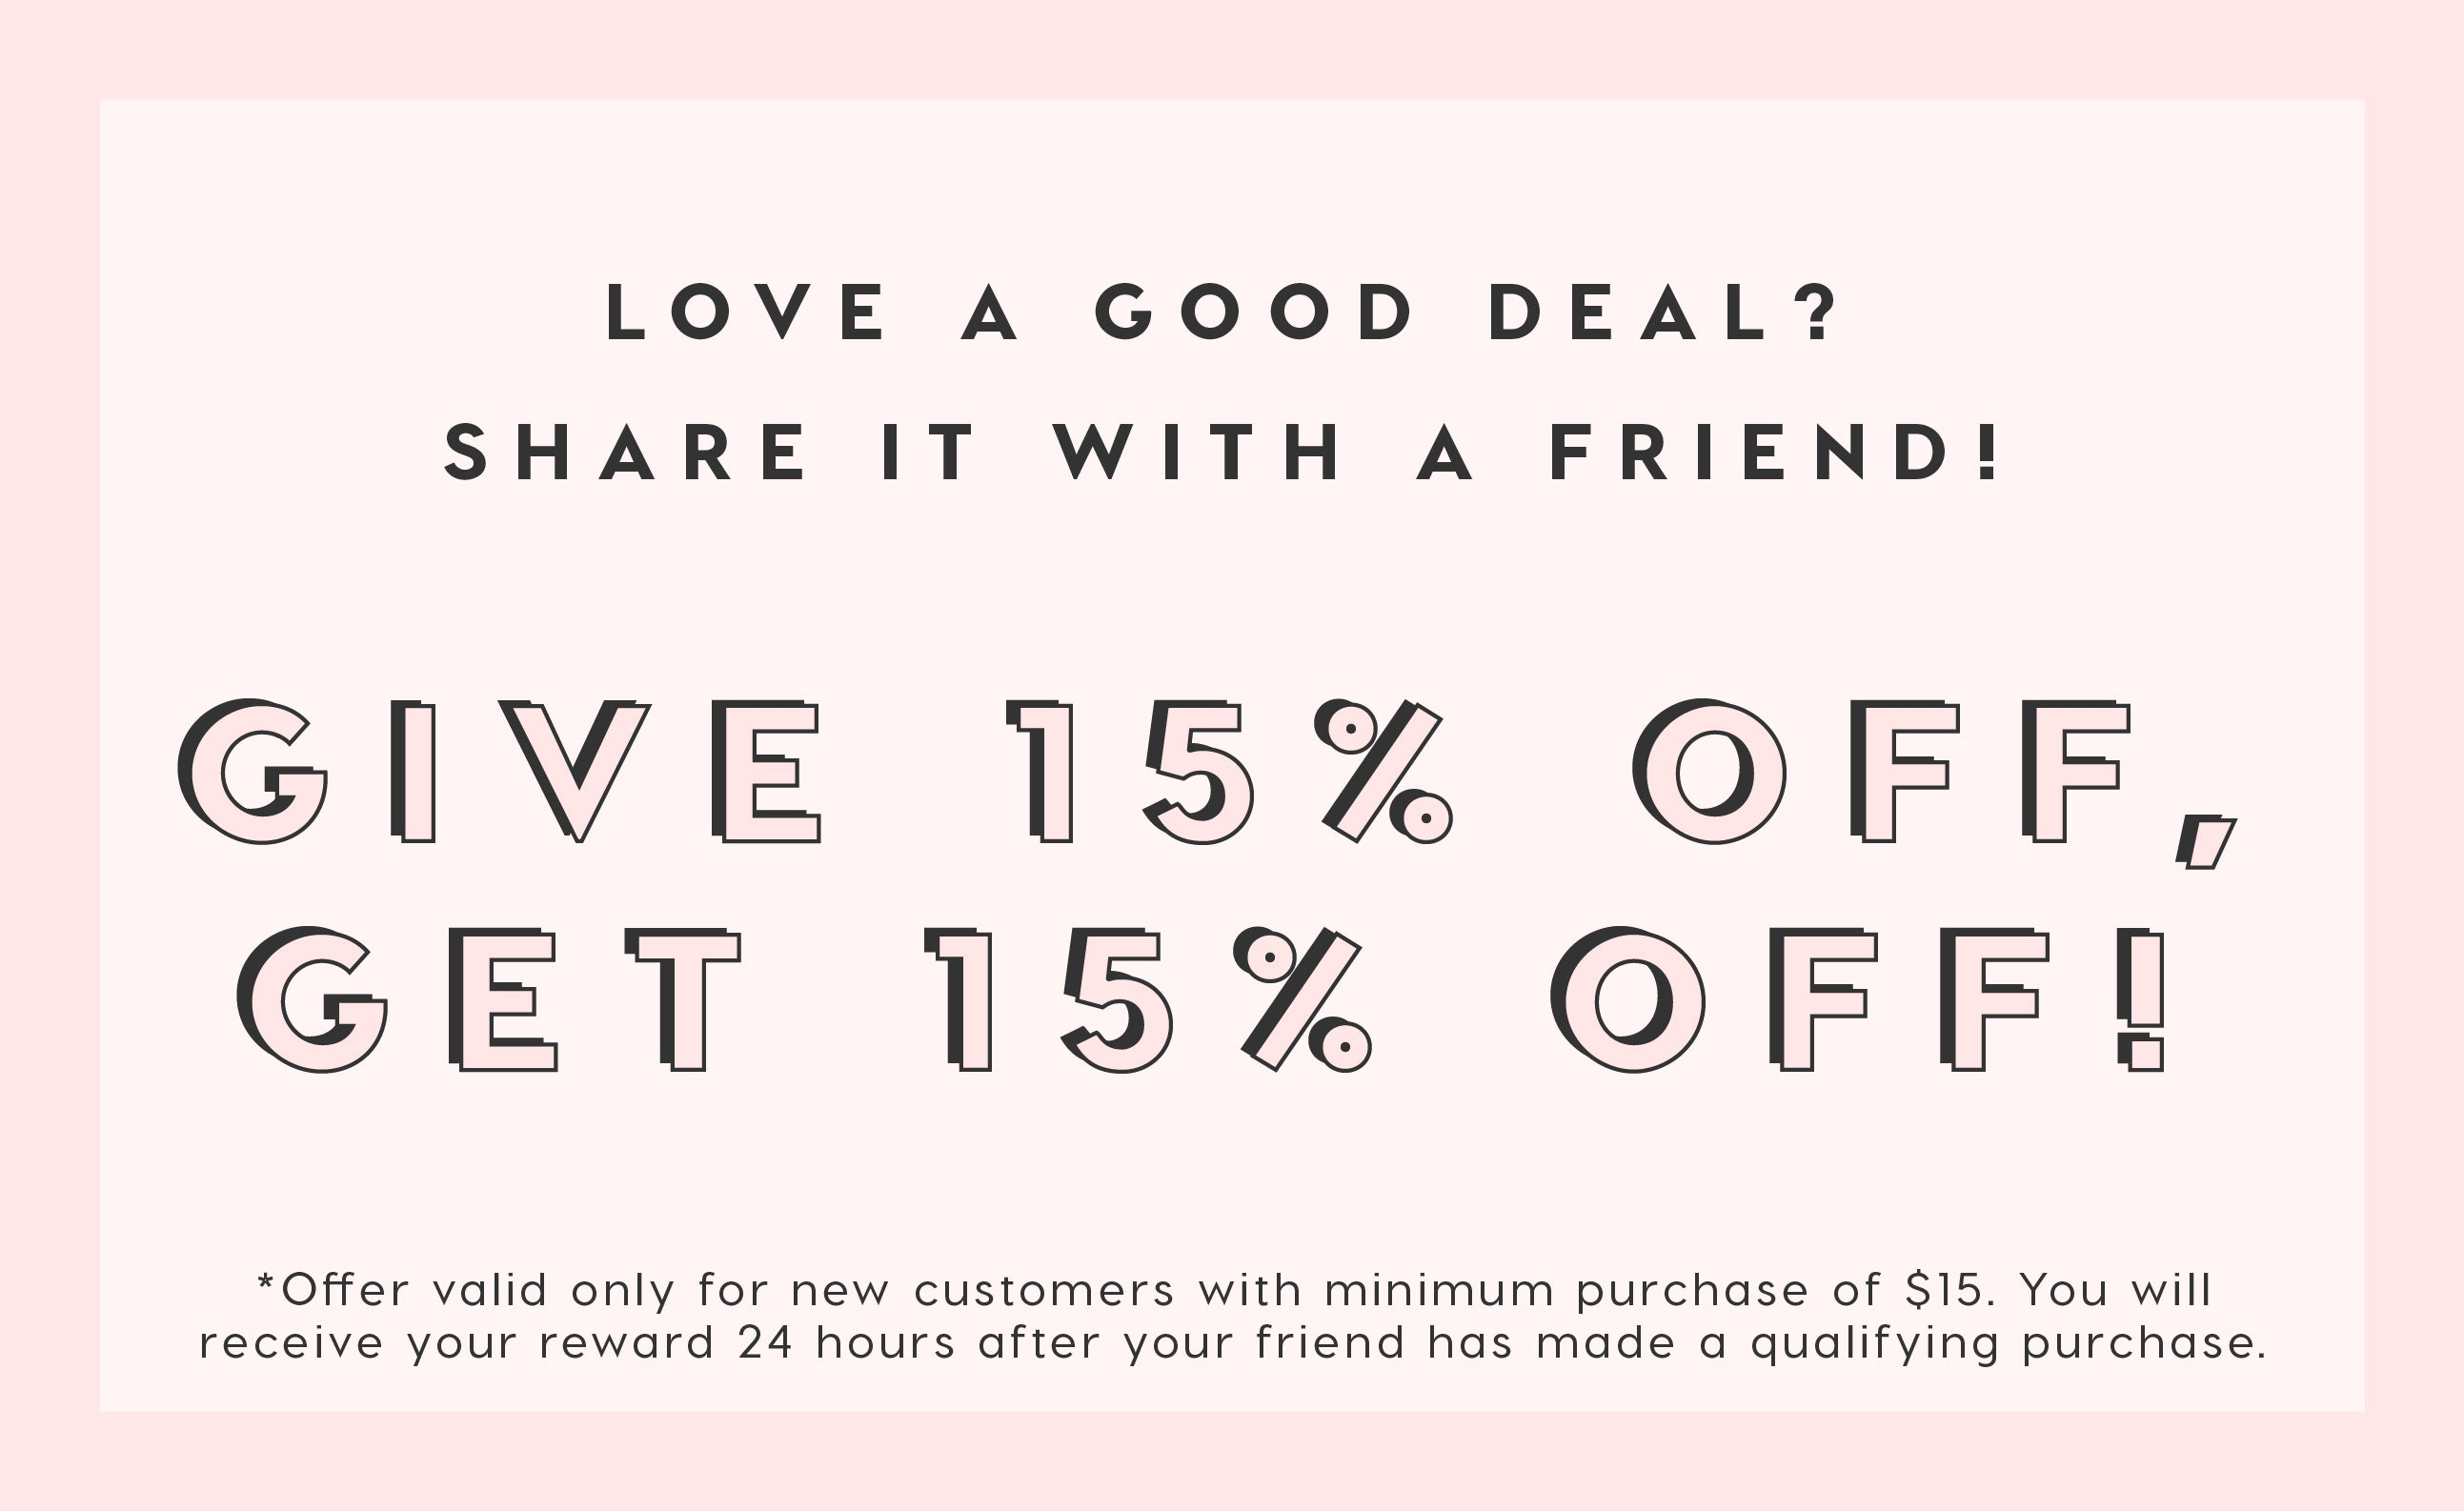 Give 15%, Get 15% Refer A Friend